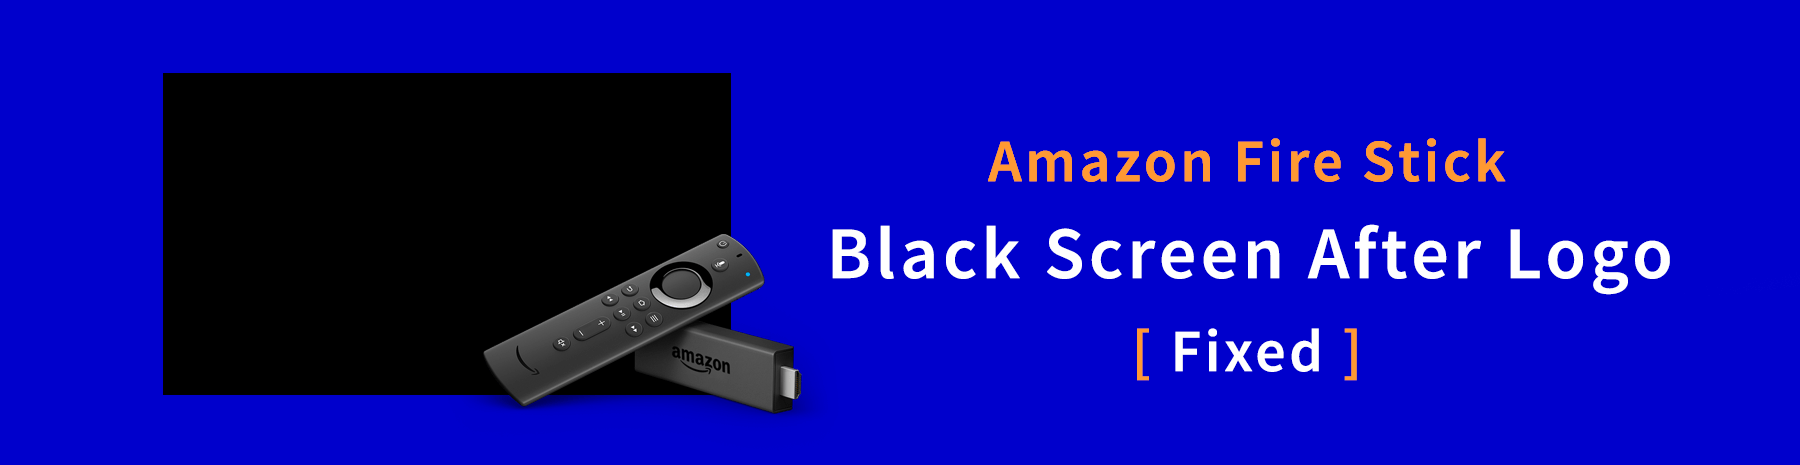 Amazon Fire Stick Black Screen After Logo: Fixed